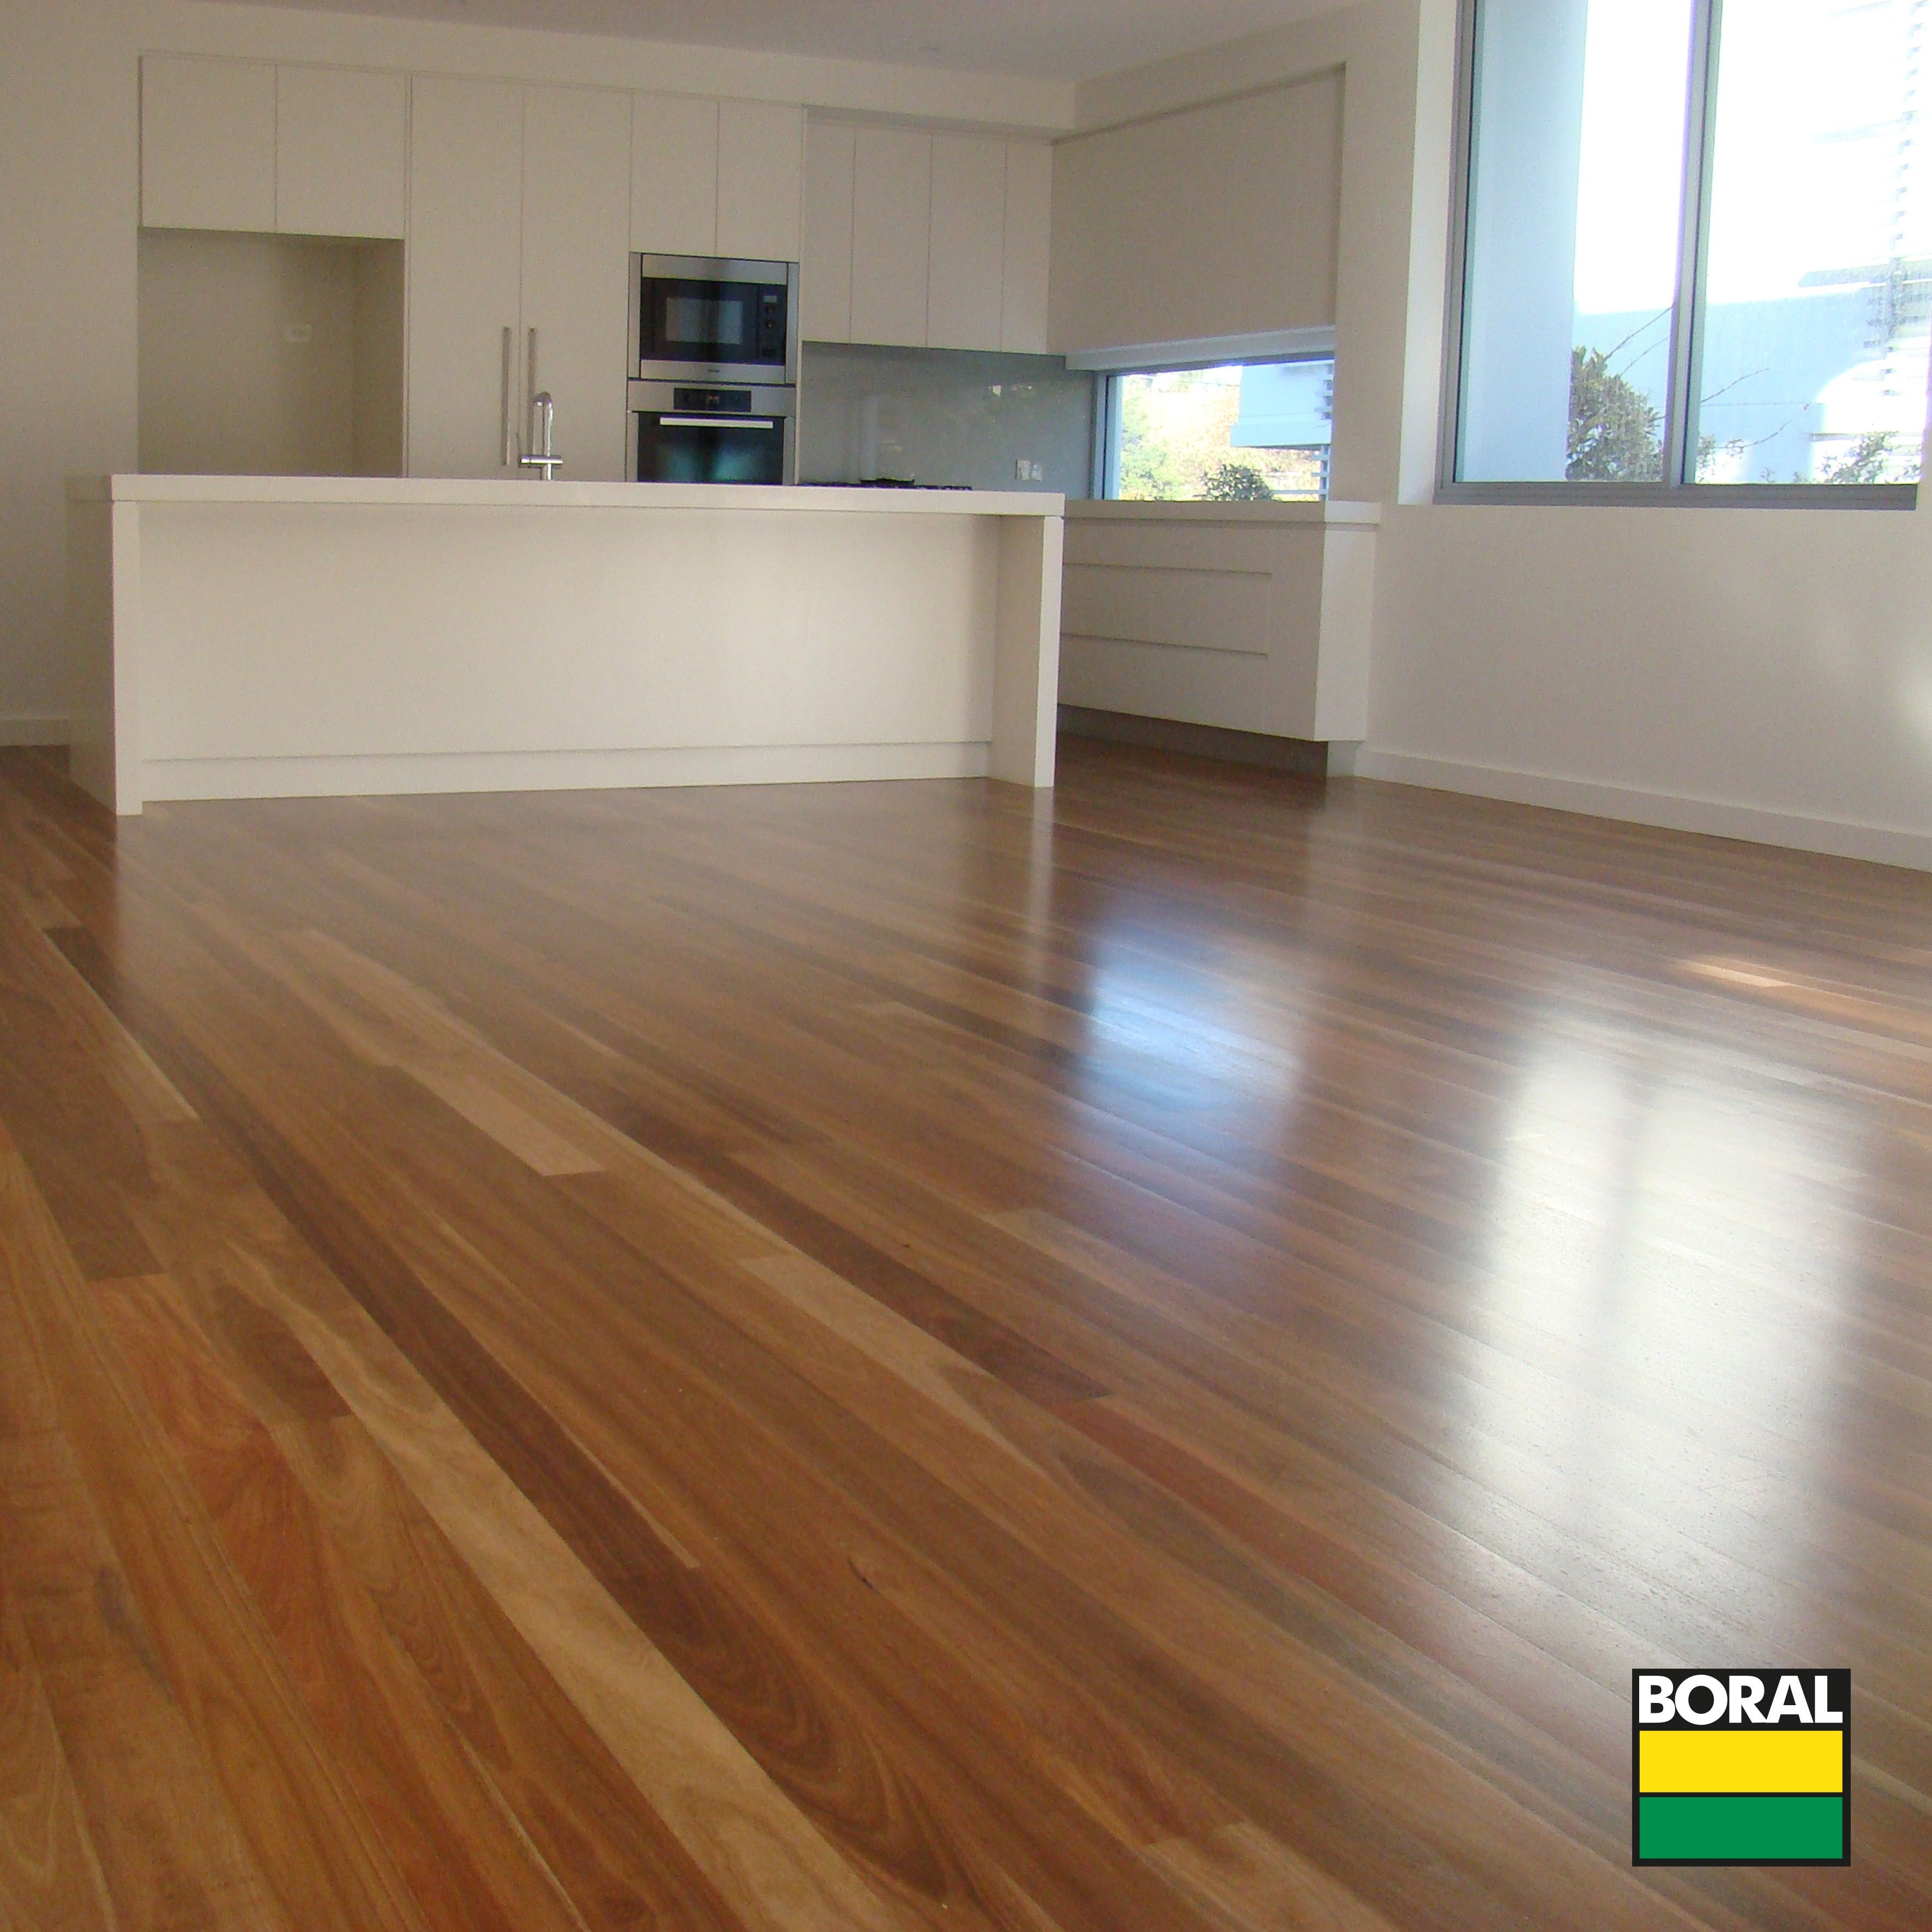 Vinyl Flooring Ideas For Kitchen Google Search: Timber Flooring、Flooring、Spotted Gum Flooring